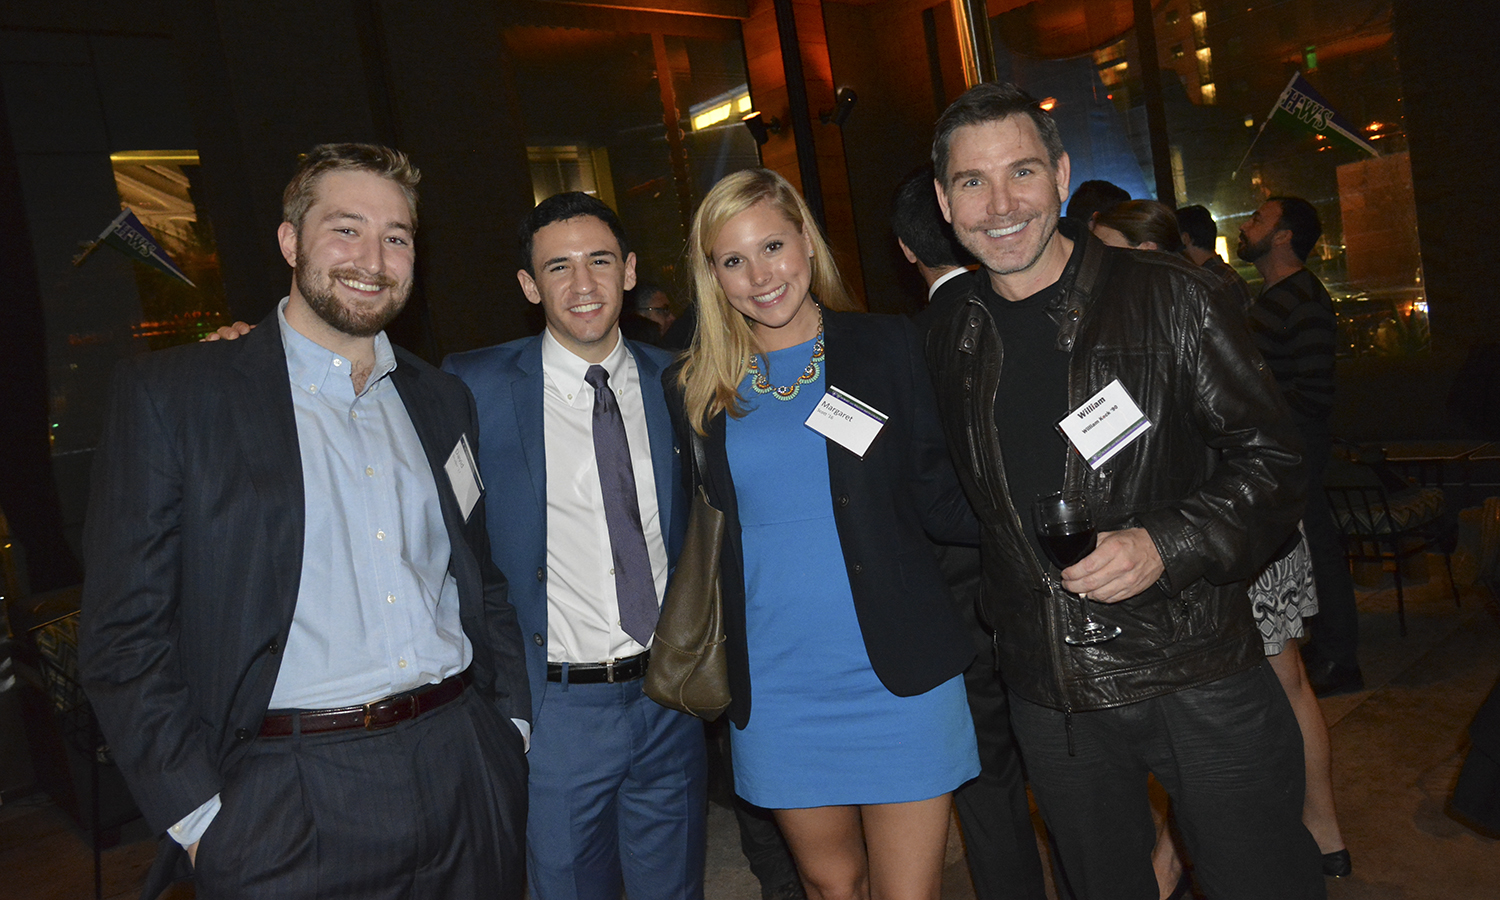 David Bruder '17, Michael DeRosa â16 , Margaret Scott '16 and Producer William Keck '90 pose for a photo during the New Year's Gathering in Los Angeles as part of the Behind the Scenes program.